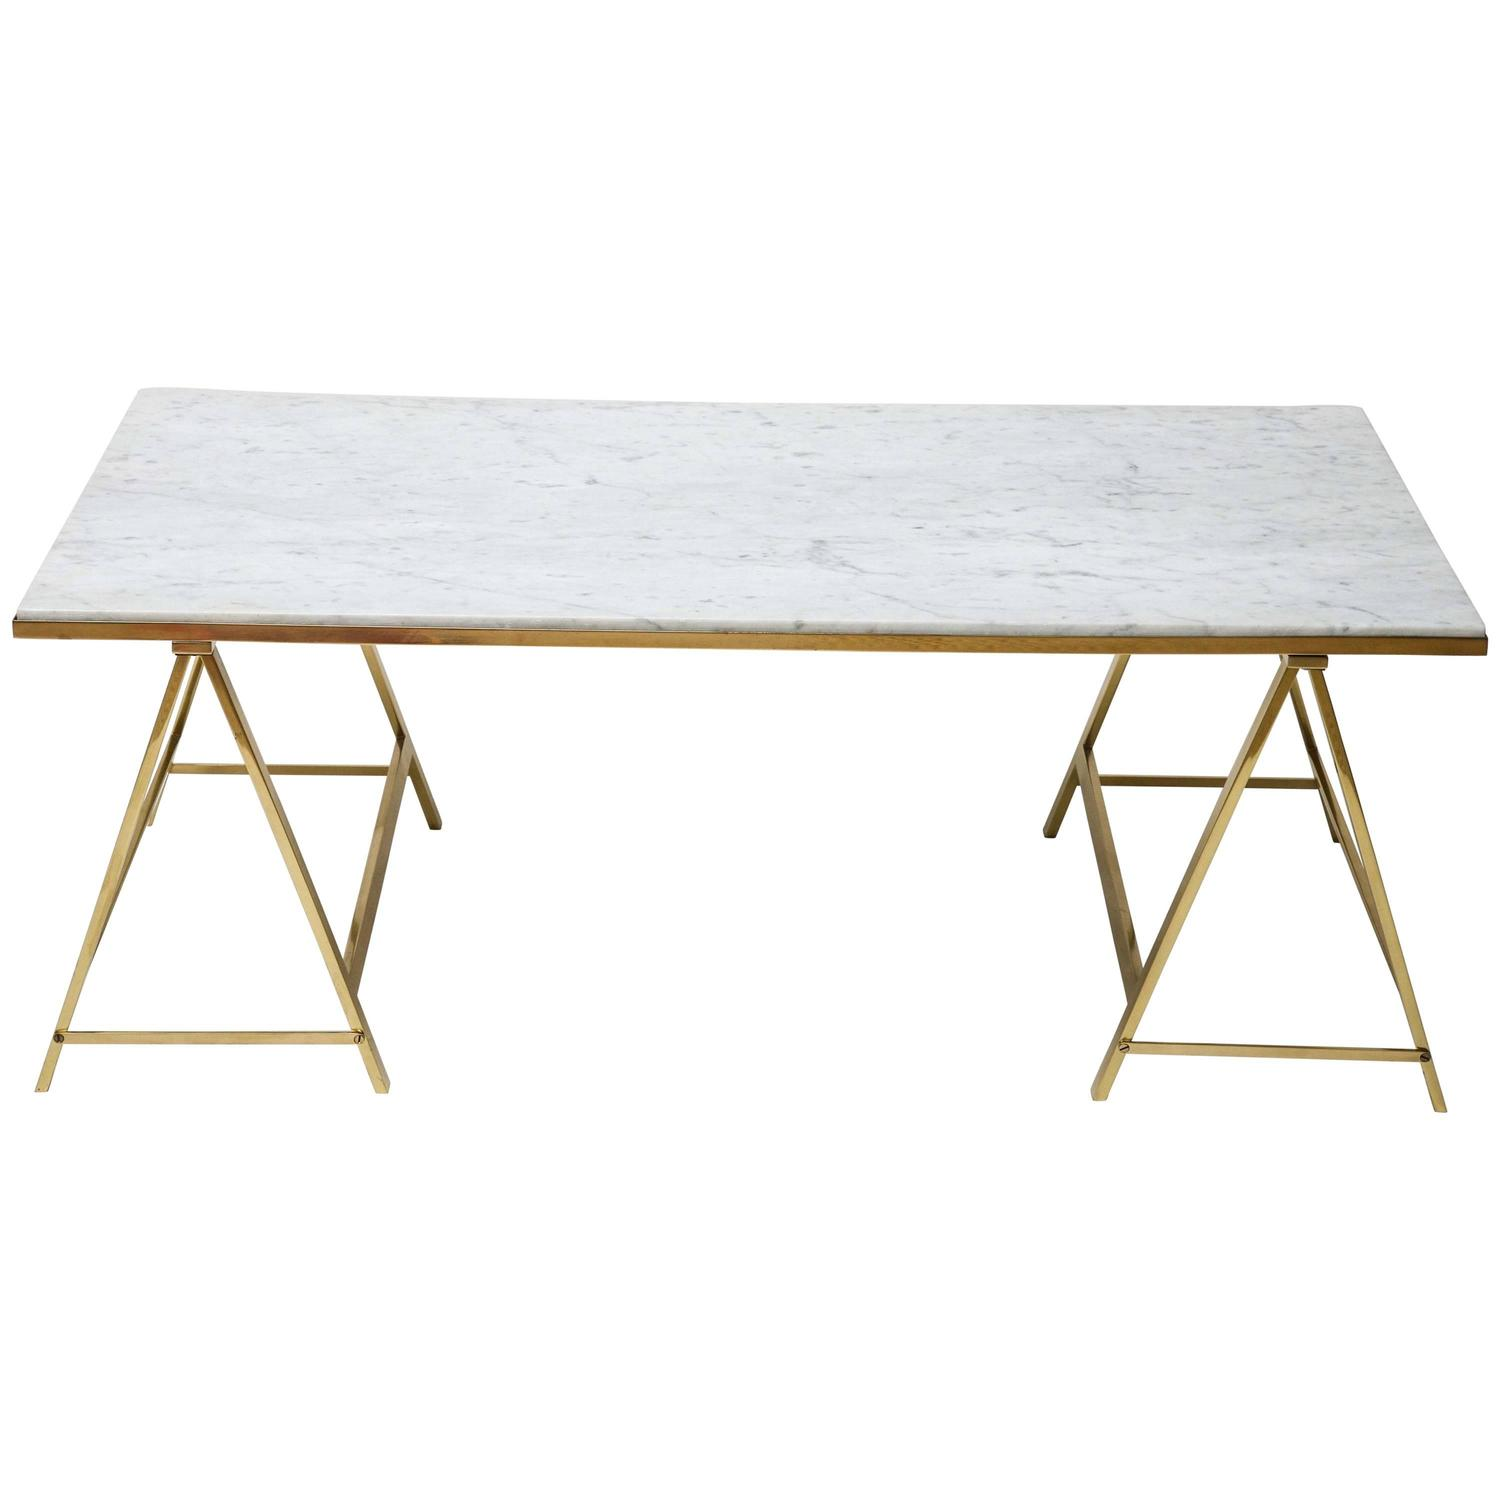 Italian Polished Brass And Marble Coffee Table At 1stdibs